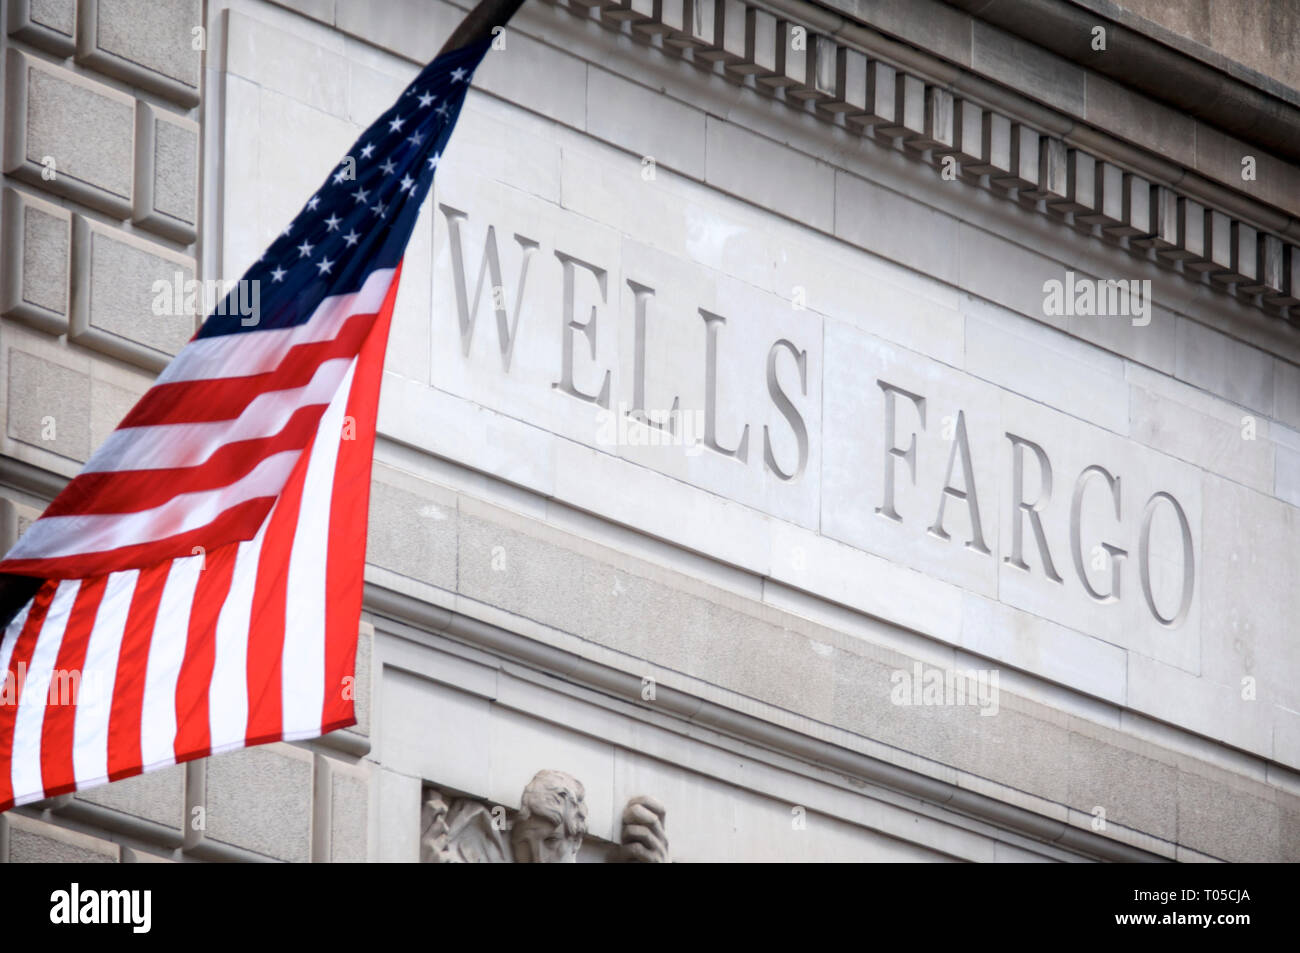 An America flag hangs above the entrance of a Wells Fargo branch in Center City Philadelphia, PA on March 15, 2019. - Stock Image